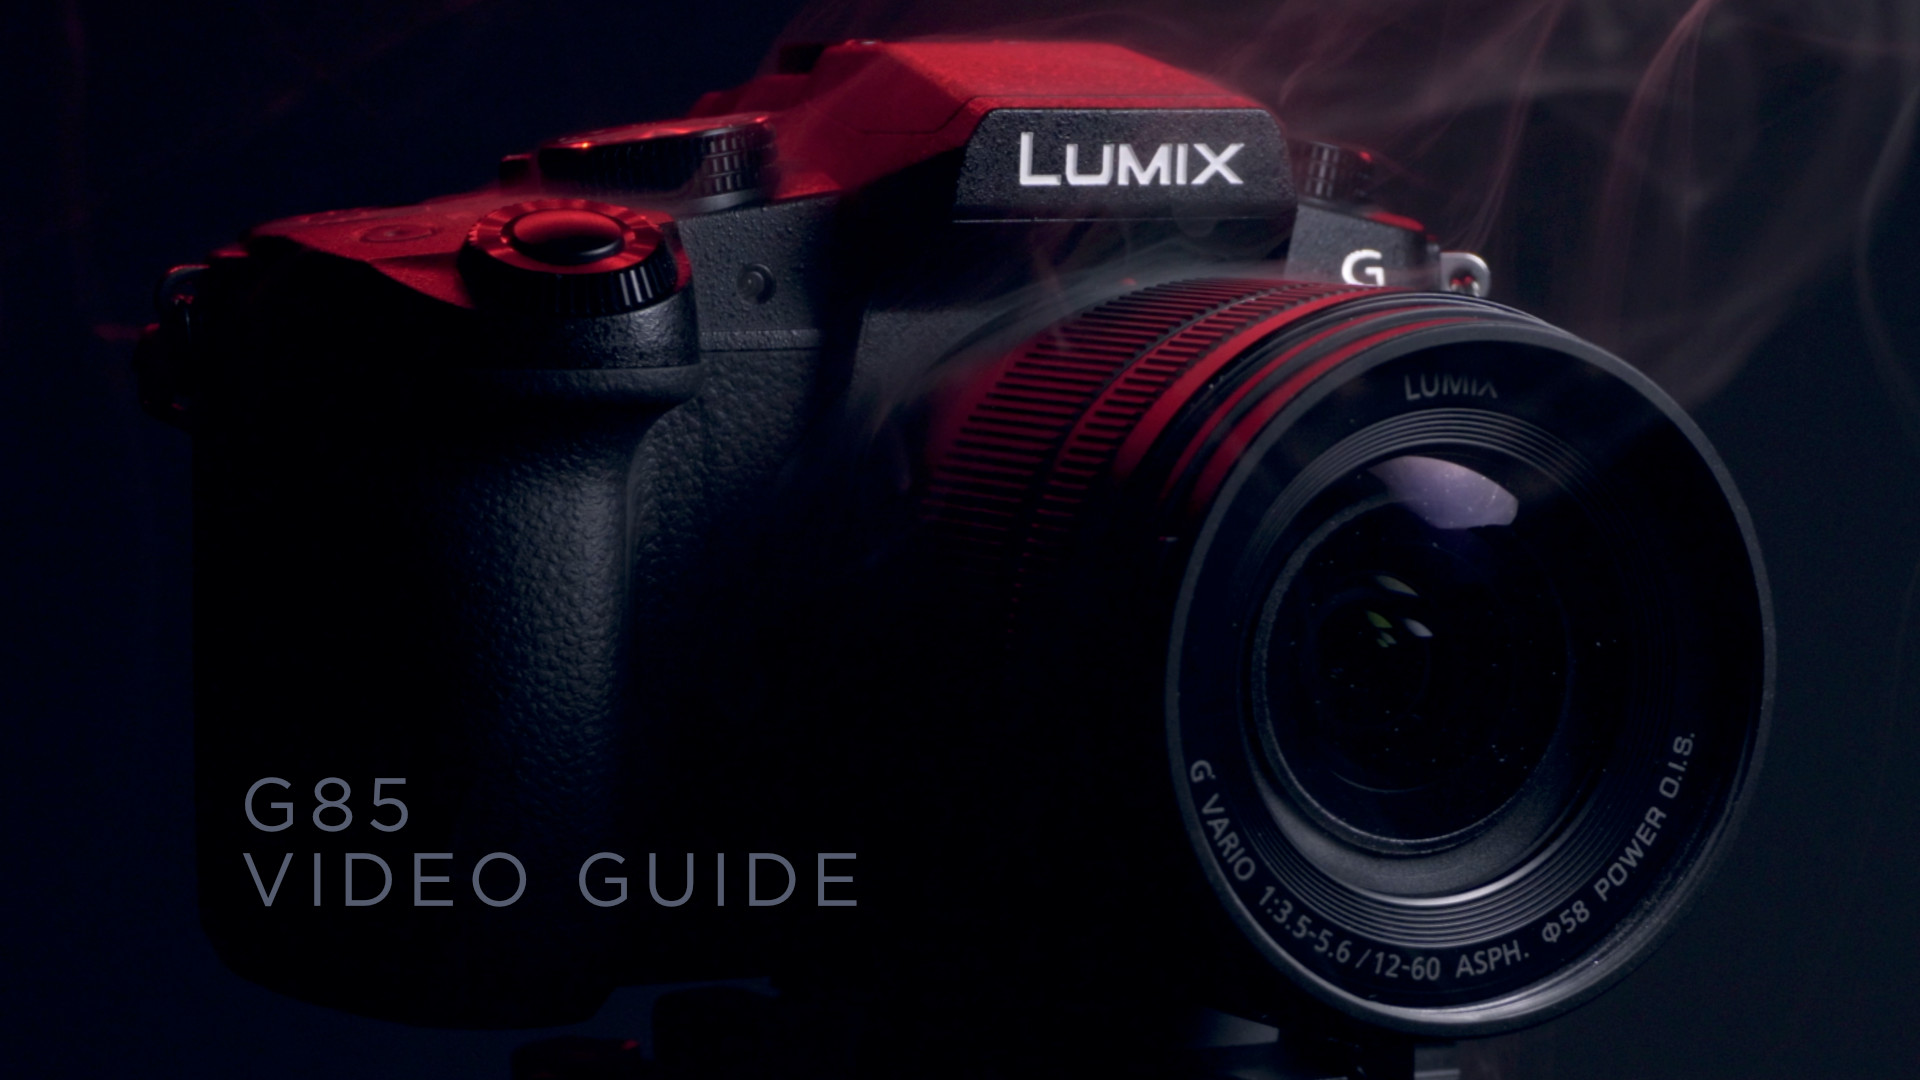 Panasonic G85 Video Guide Available!